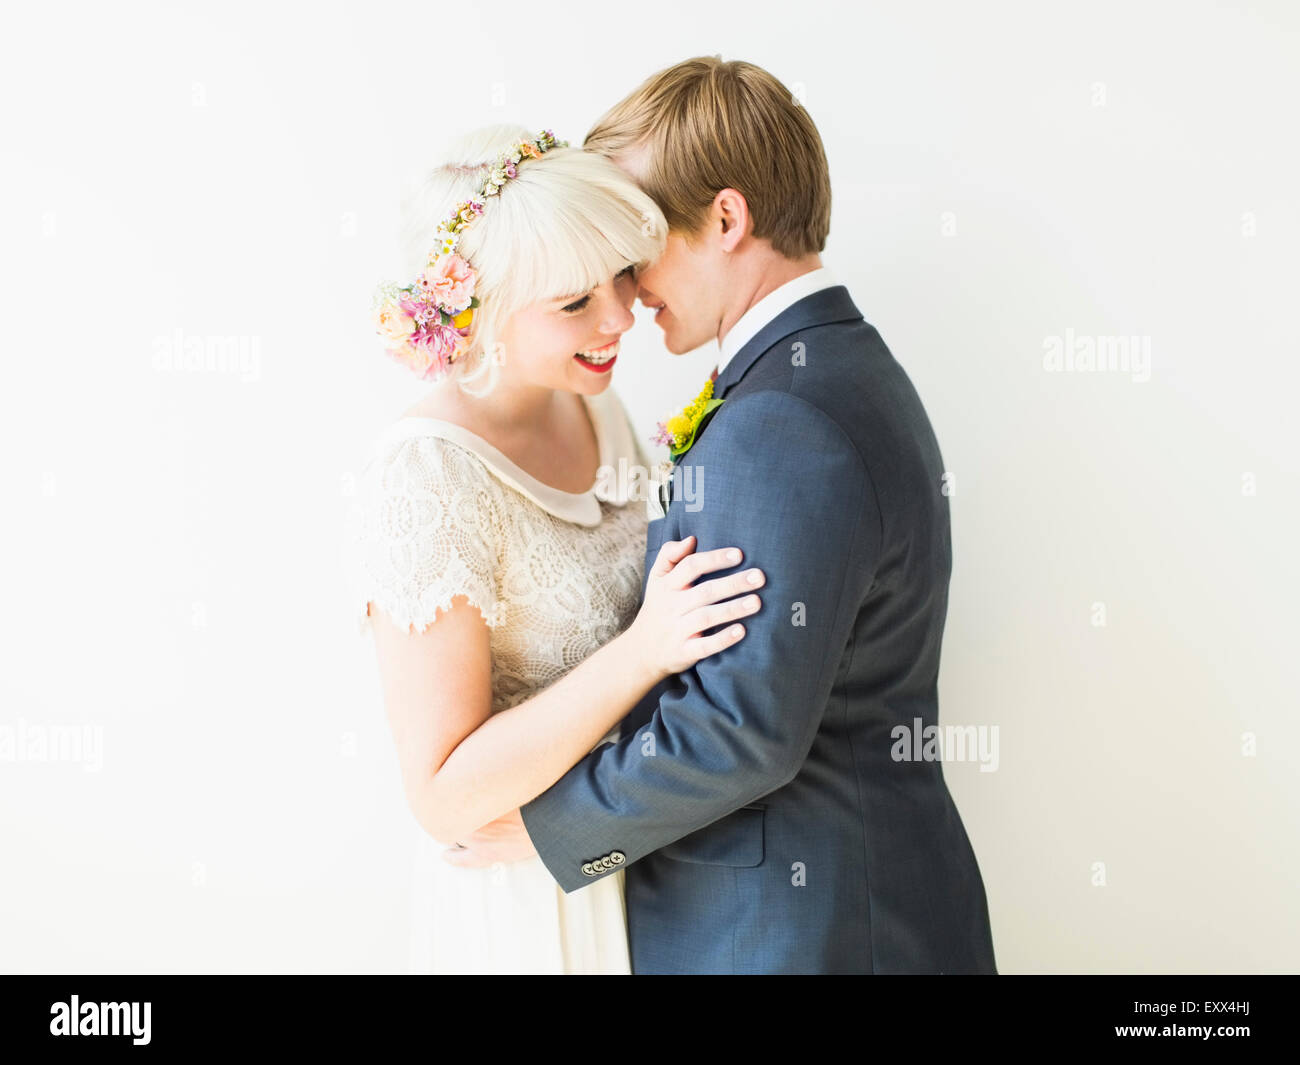 Smiling young couple embracing Photo Stock